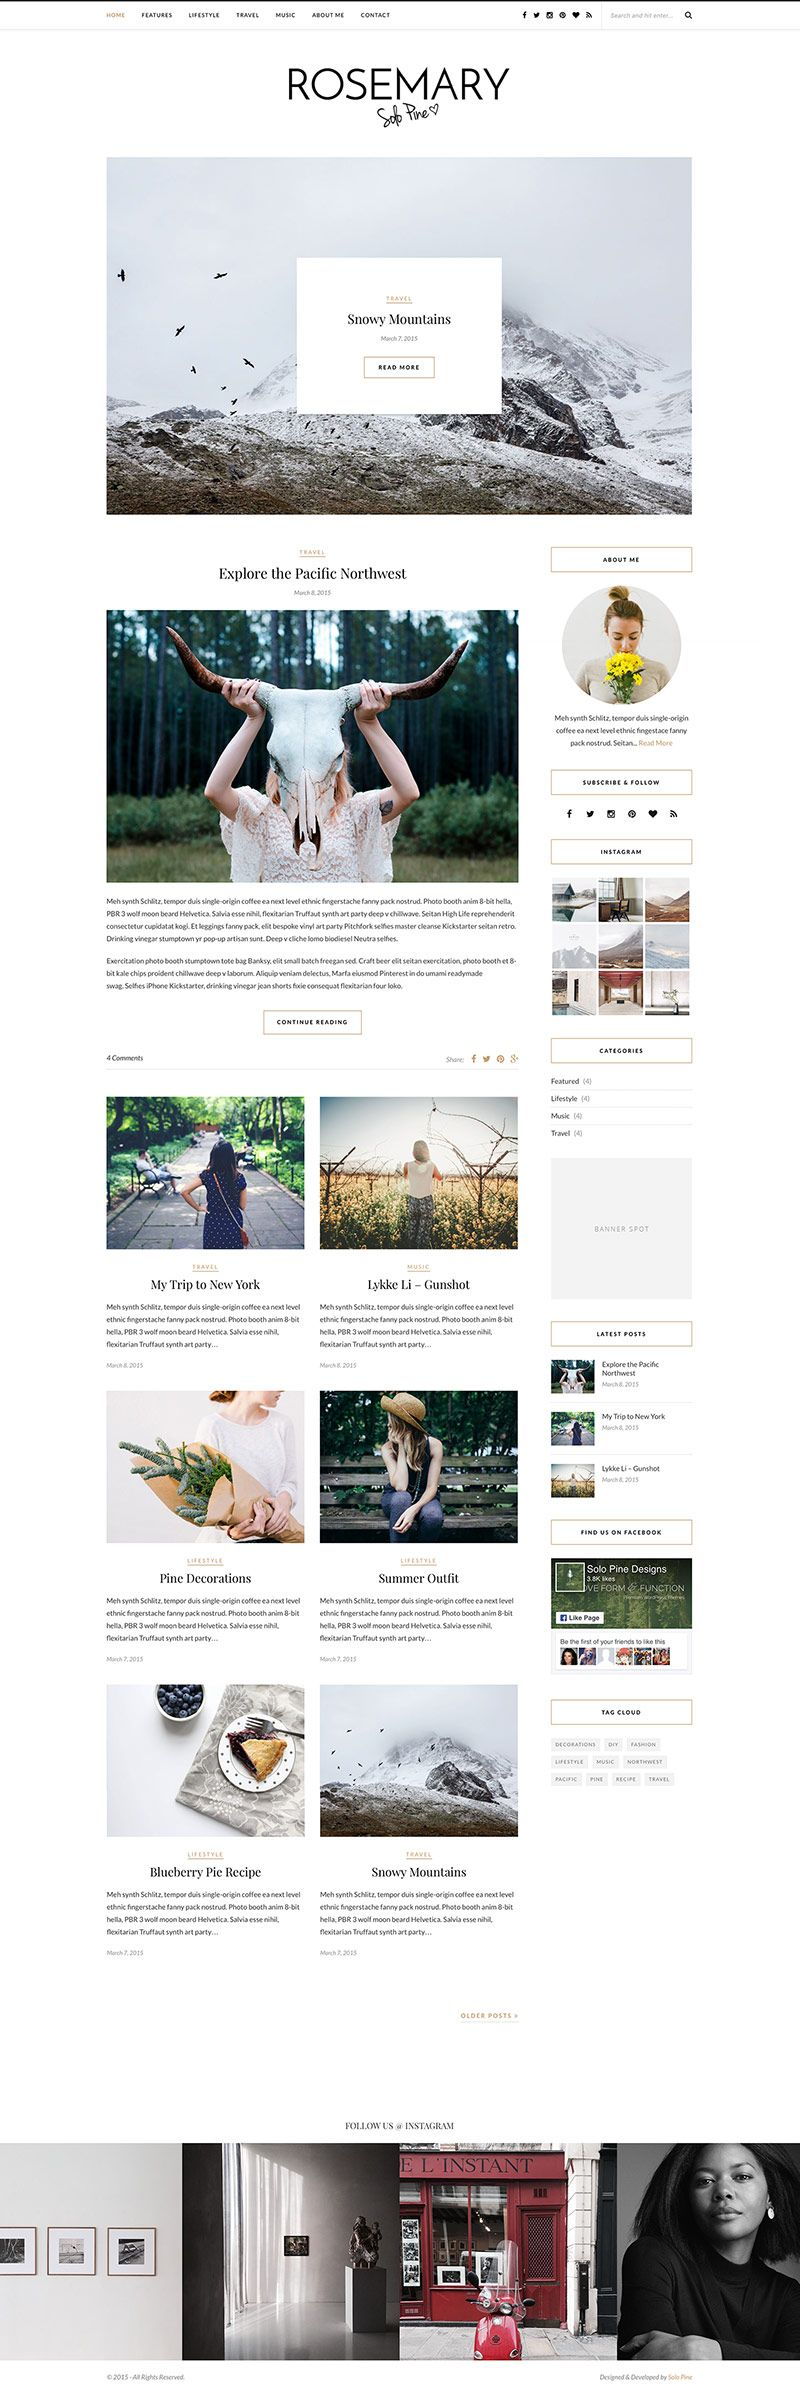 Rosemary Is One Of My Favorite Blog Wordpress Themes And I M Sure Going To Use It Someday I Blog Design Inspiration Blog Themes Wordpress Blog Layout Design